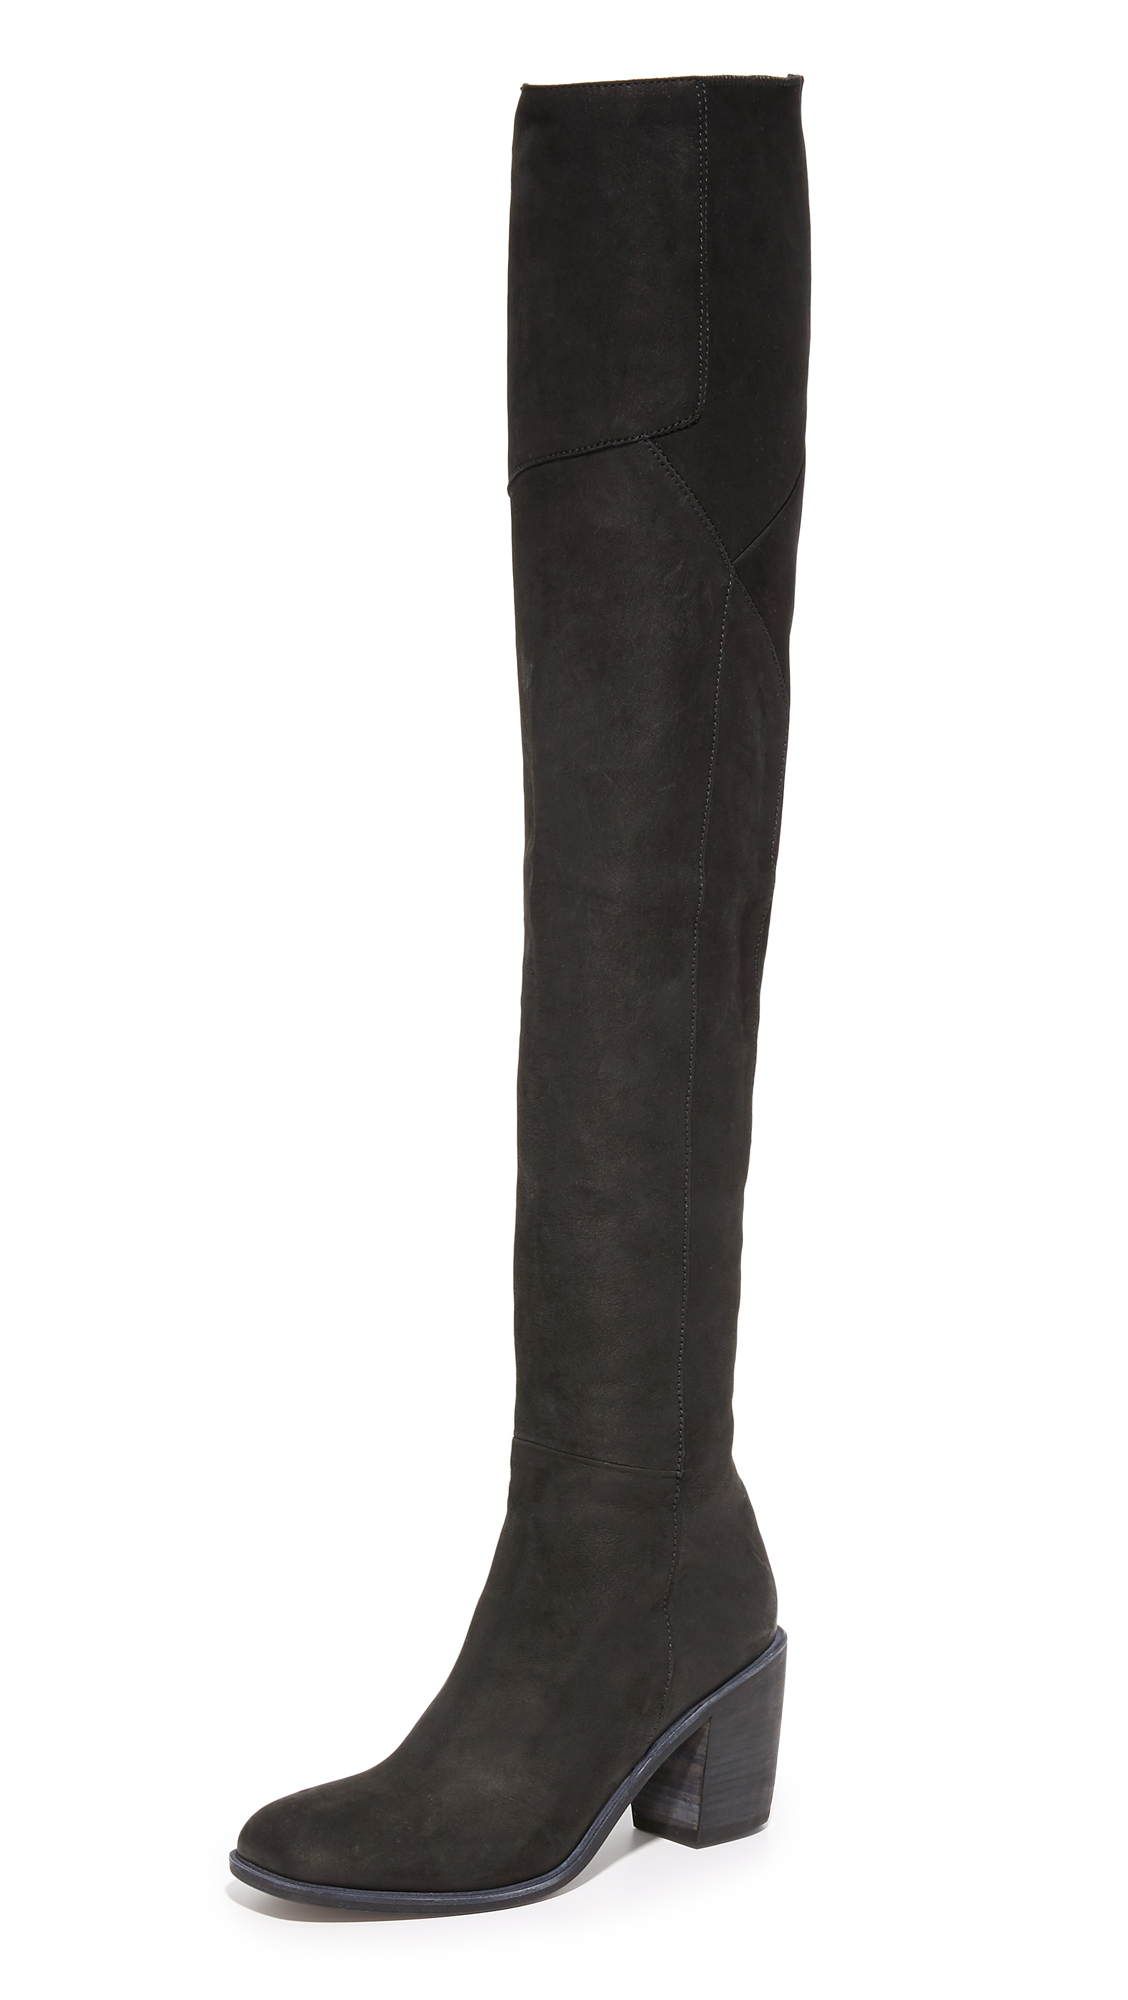 Ld Tuttle The Torch Over The Knee Boots - Black